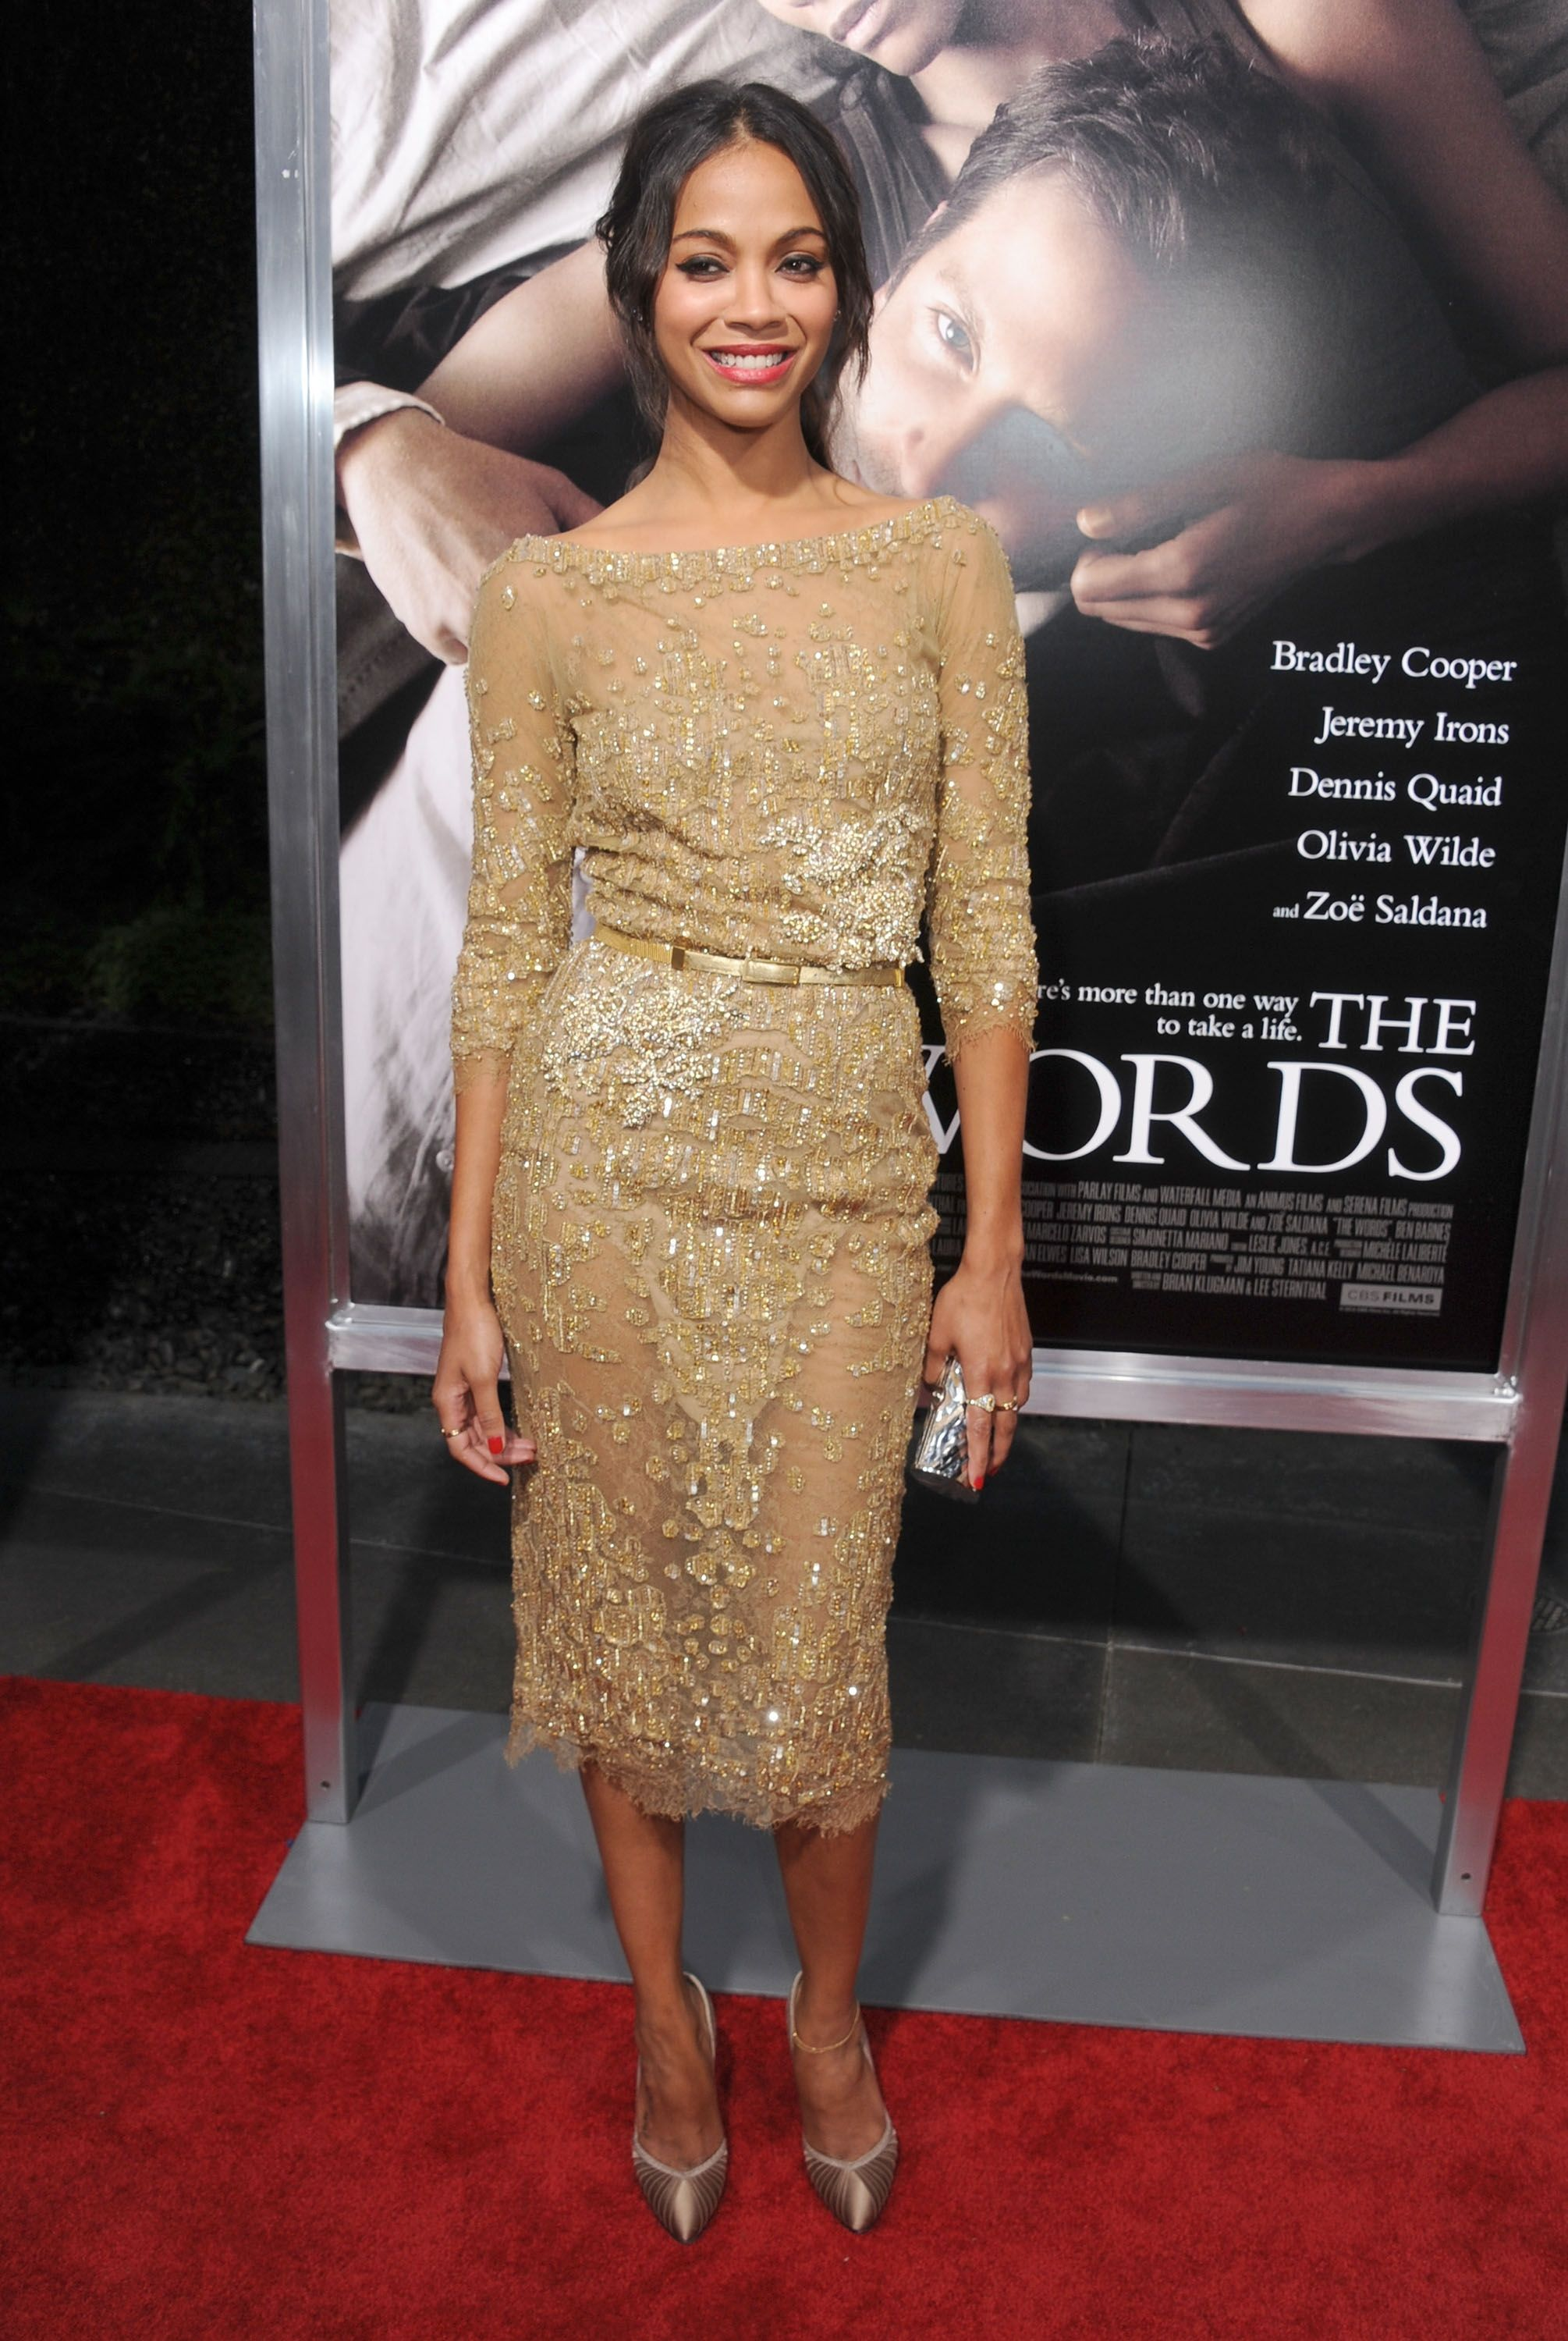 """Zoe Saldana in ELIE SAAB Haute Couture Fall-Winter 2012-13 for """"The Words"""" Premiere in Los Angeles."""